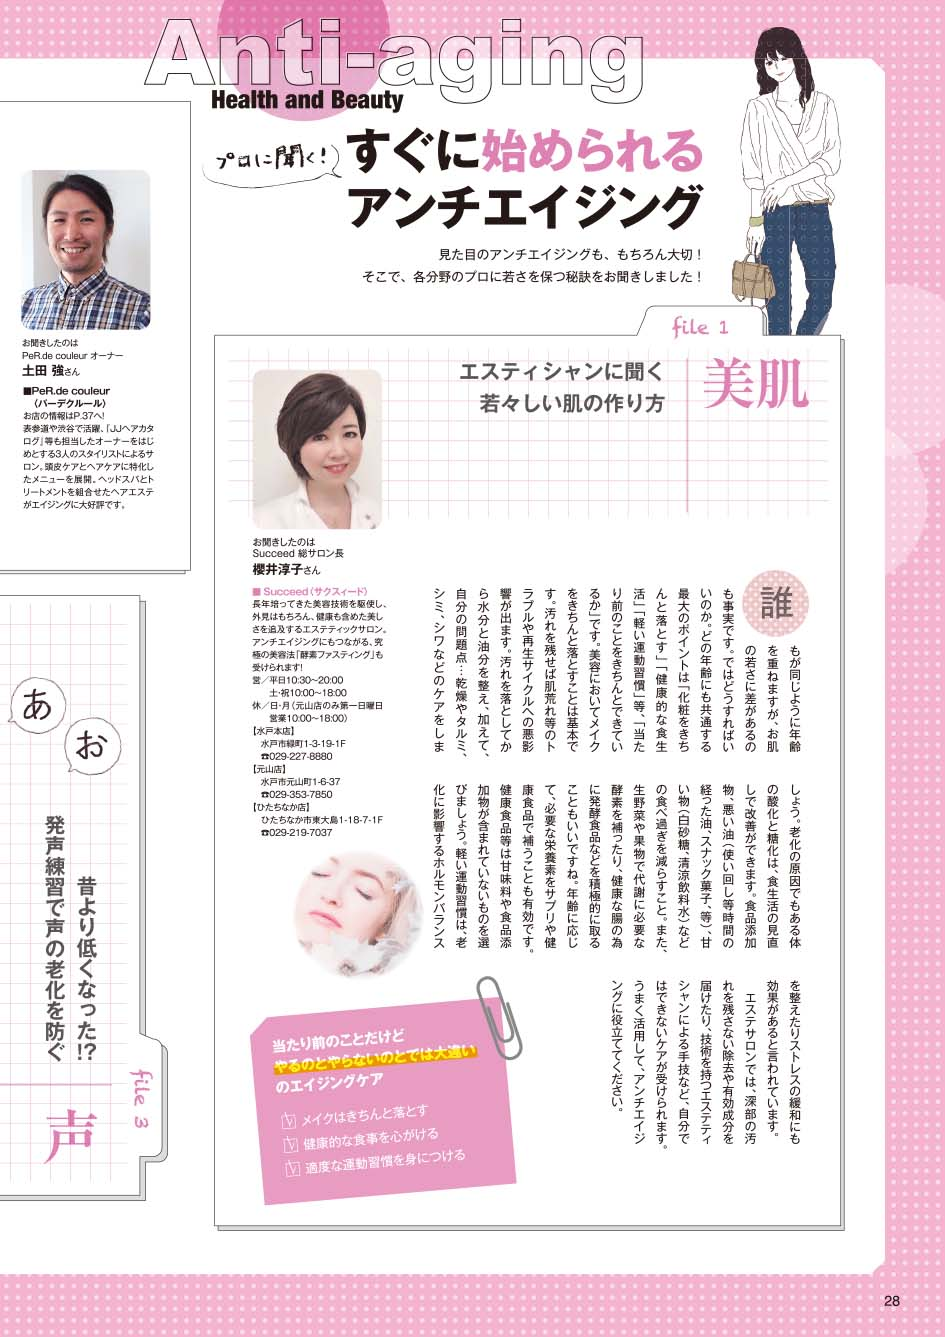 Health and Beauty Anti-aging 大人のためのアンチエイジング